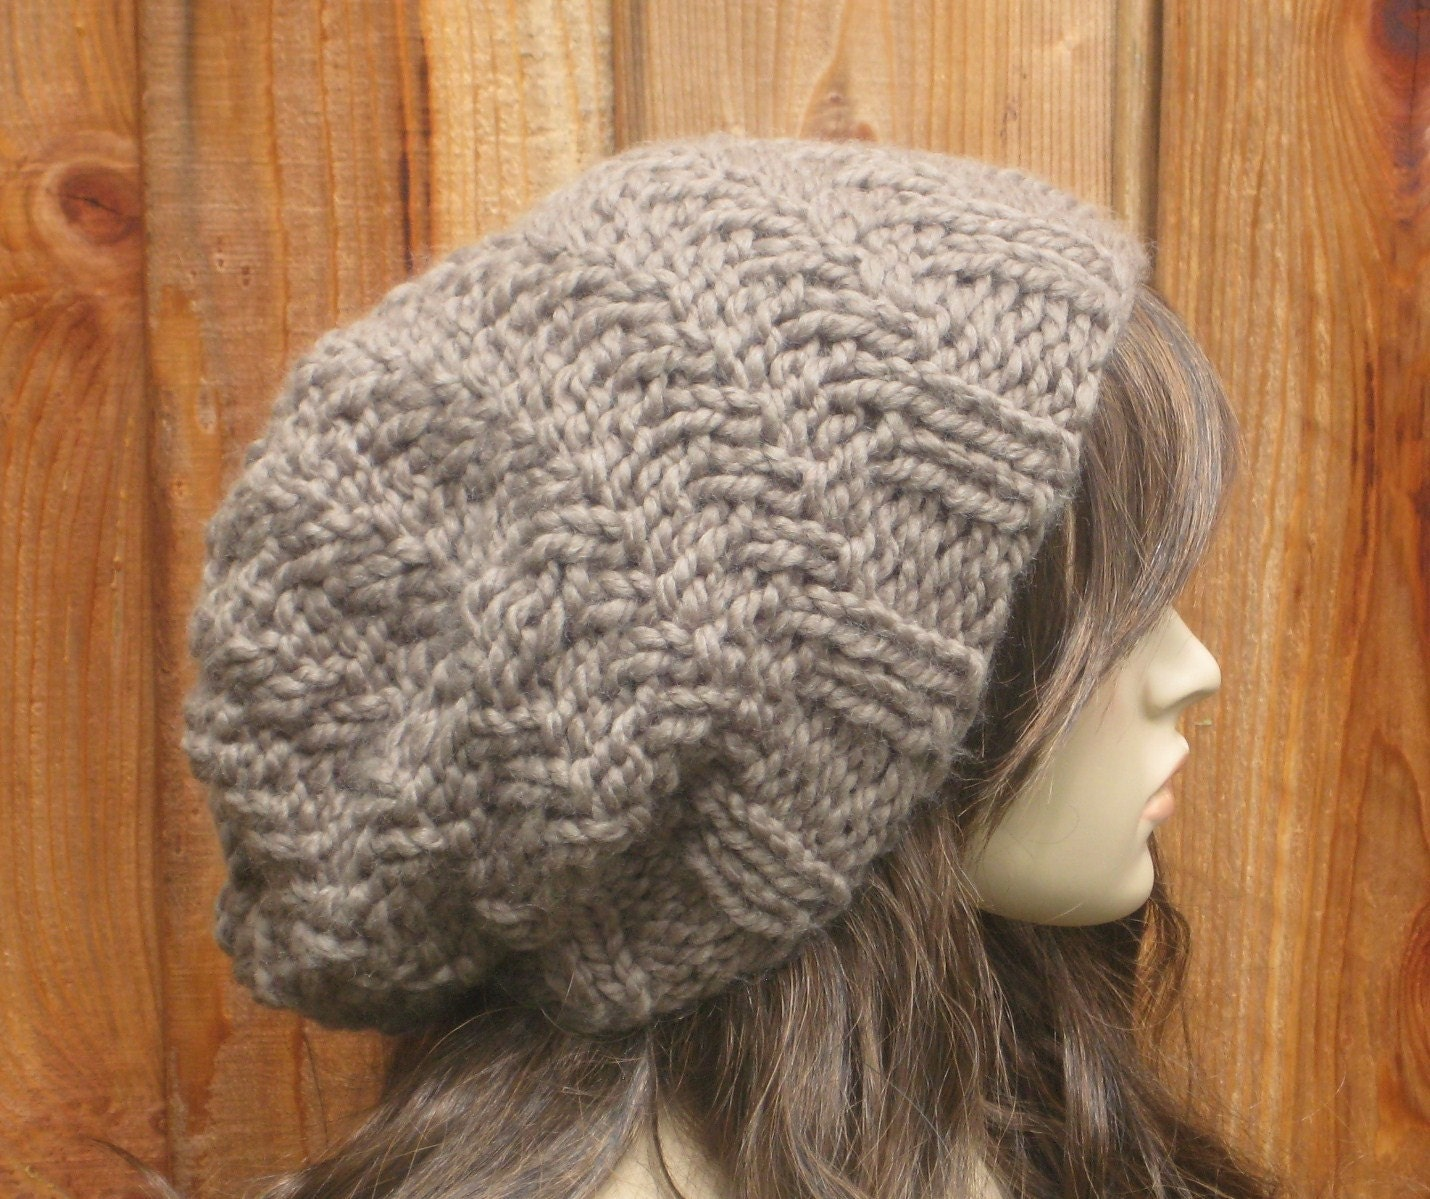 Oversized Swirl Beanie KNITTING PATTERN by JKnitsBoutique on Etsy